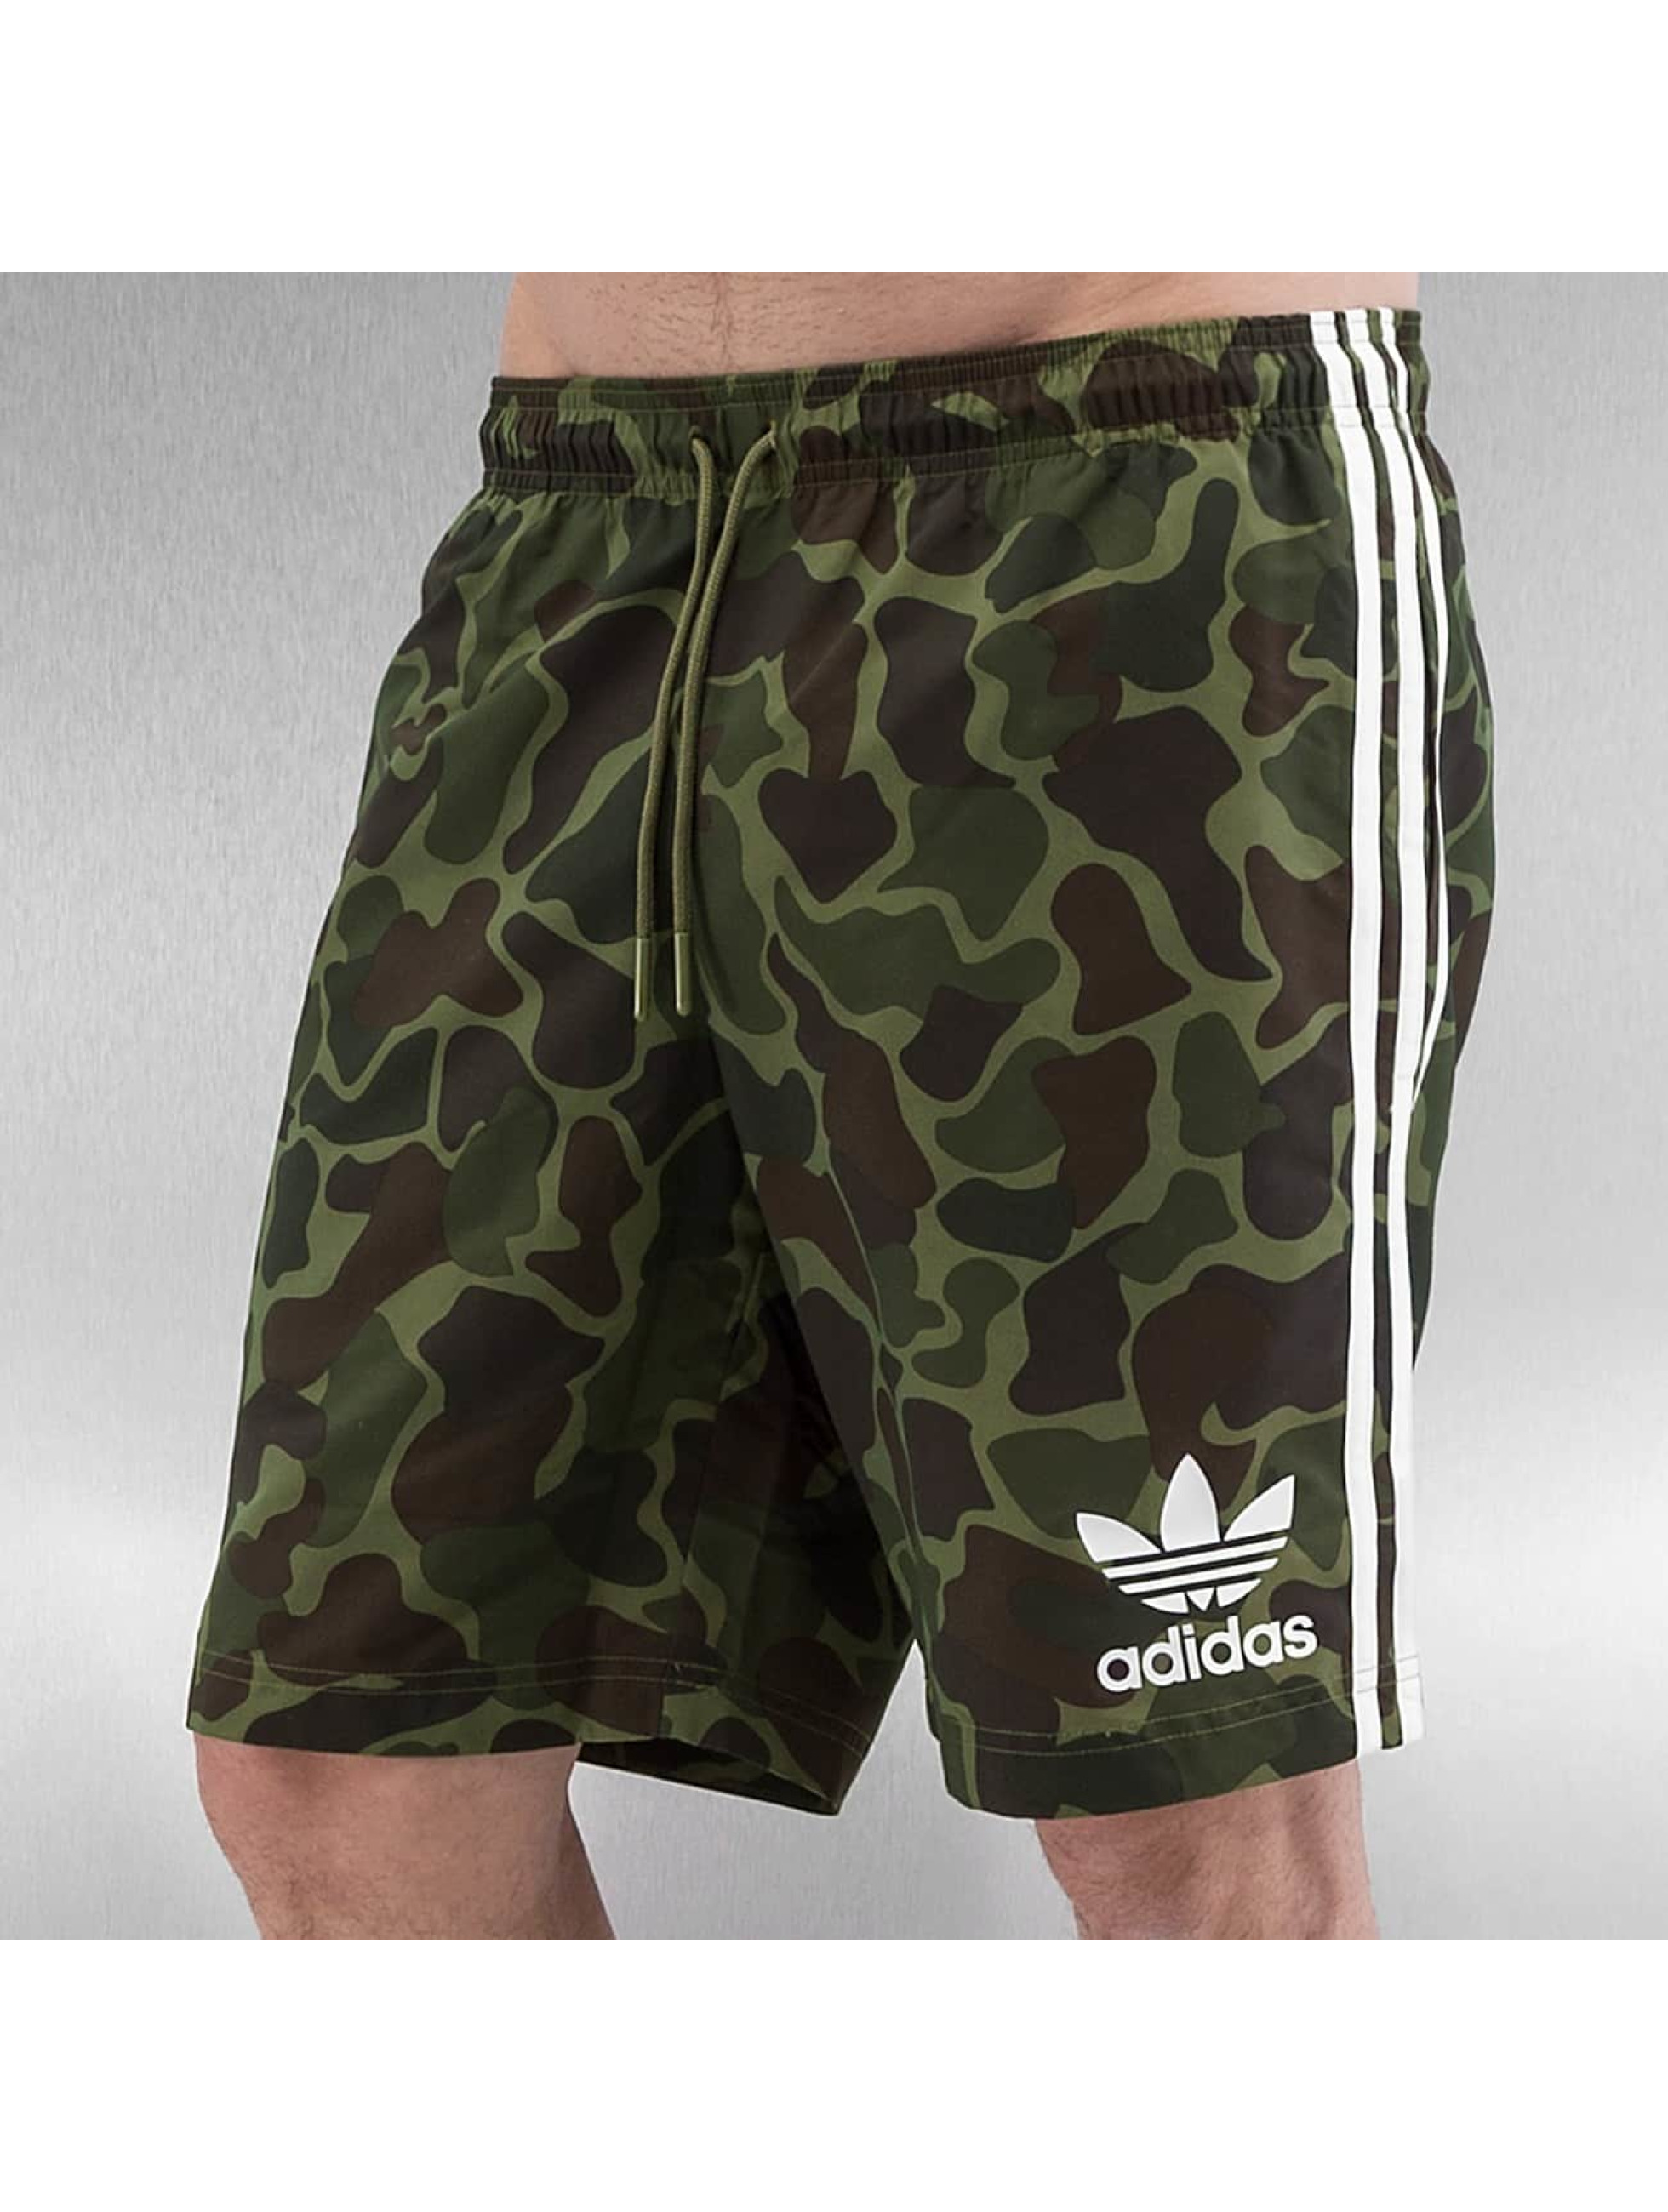 adidas herren hosen shorts camo ebay. Black Bedroom Furniture Sets. Home Design Ideas